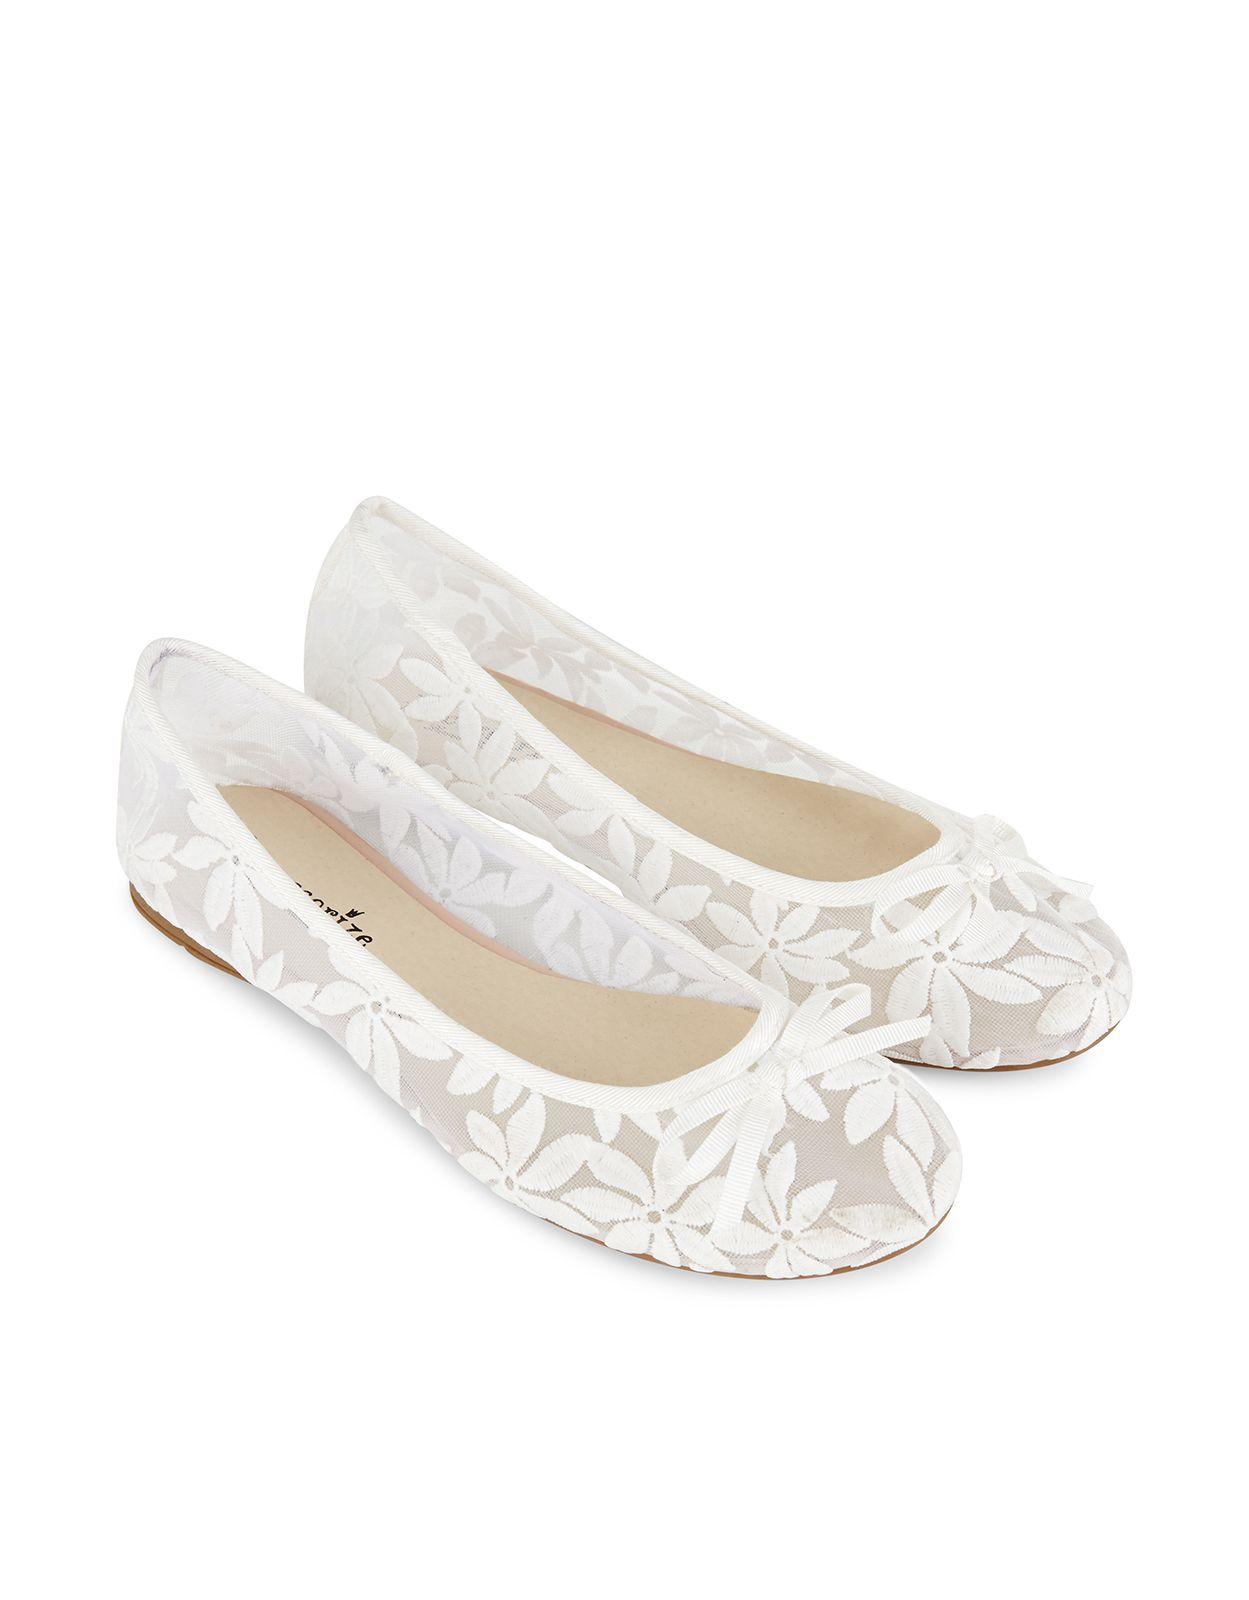 be35d206ef41 Daisy Lace Ballerina Shoes